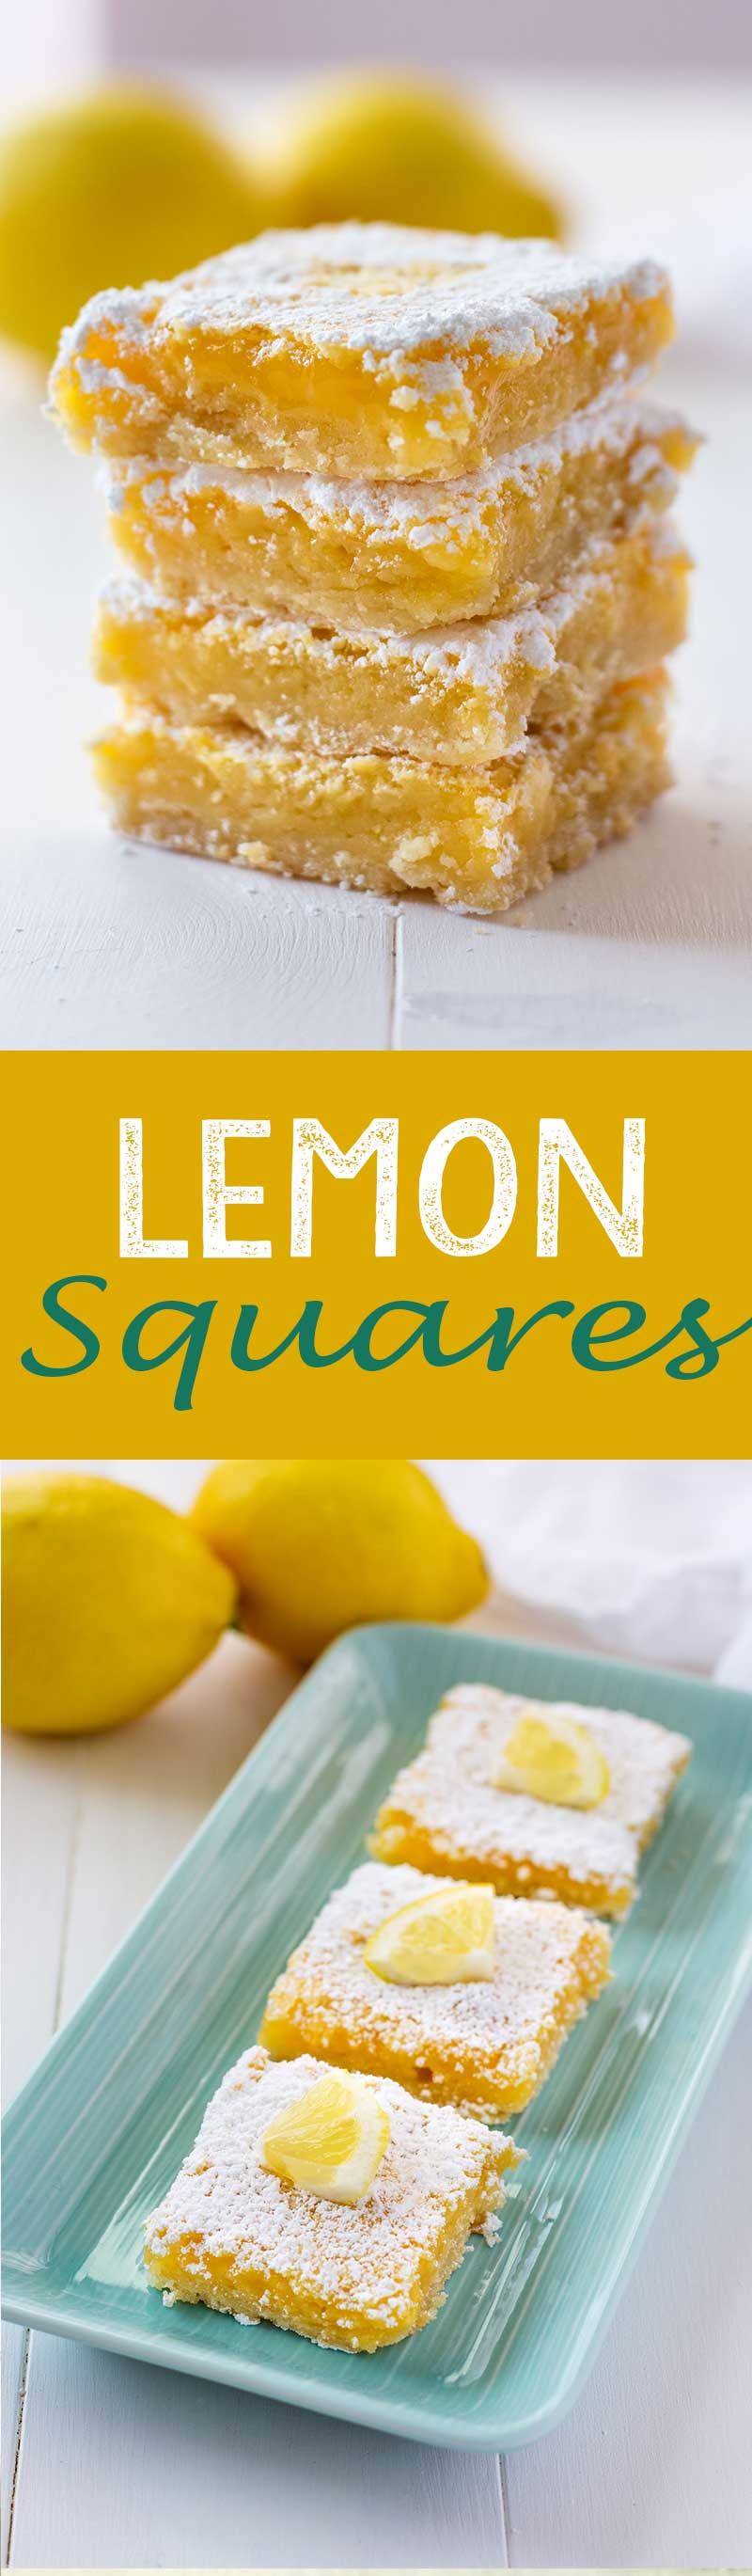 These are a family favorite recipe. Lemon squares are tasty and delicious!